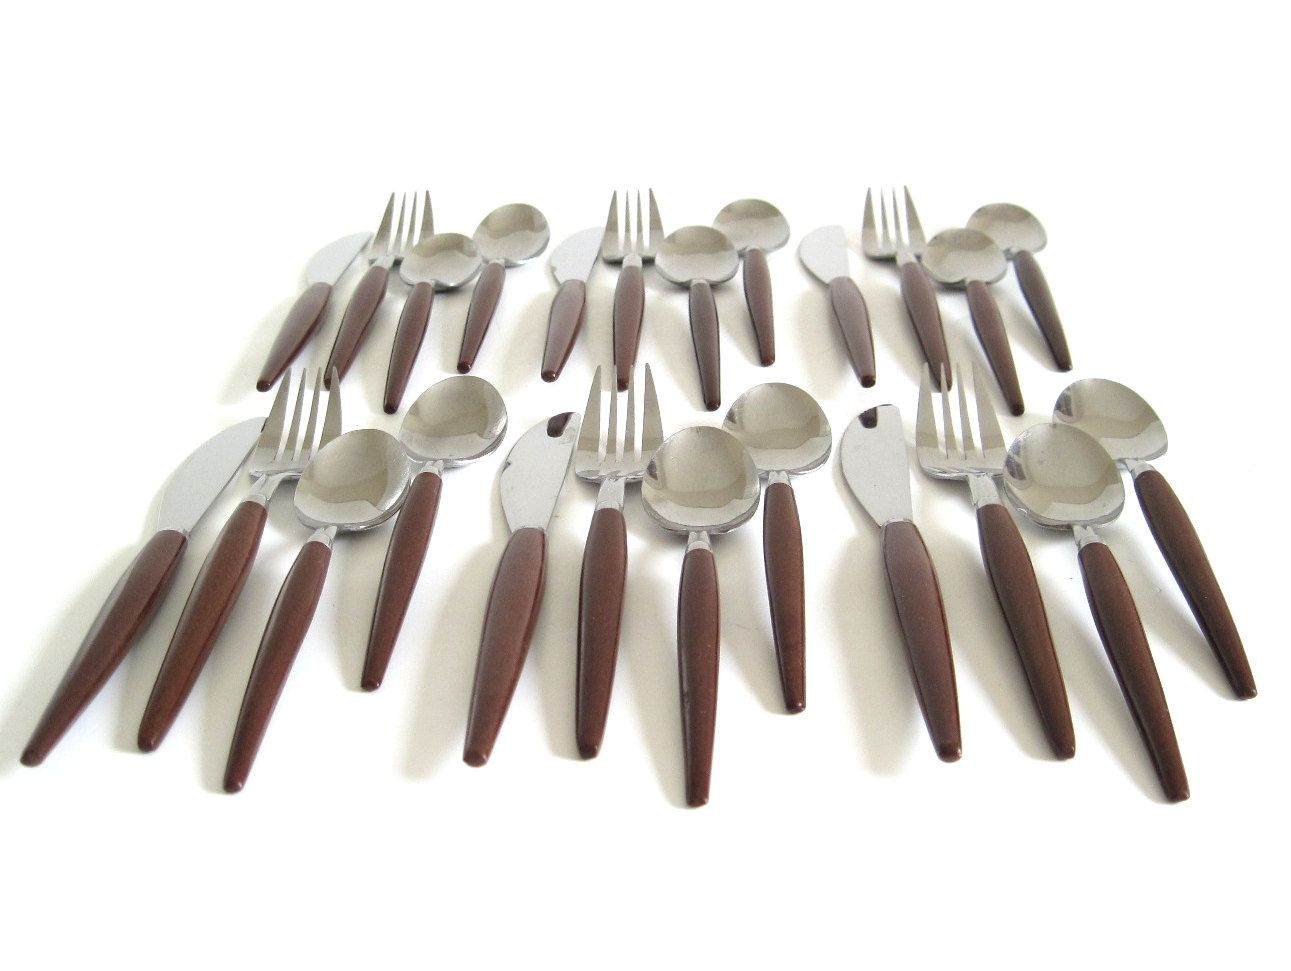 Stainless Flatware Set Wood Handles Basic Service For 6 An Brown Handle Silverware Danish Modern By Lauraslastditch On Etsy